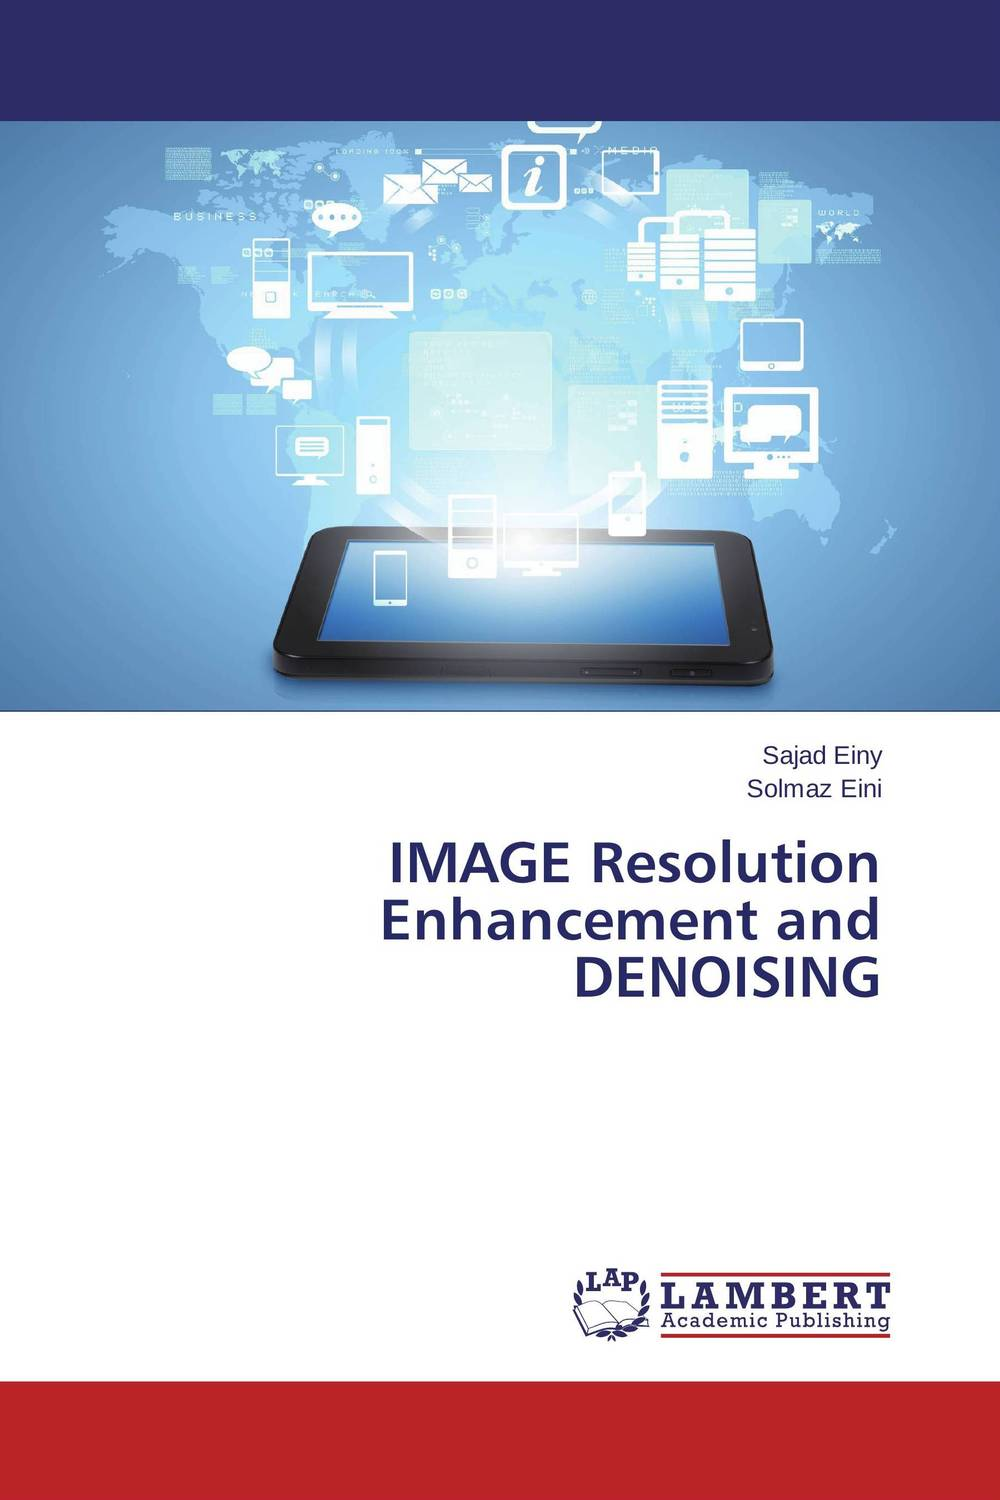 IMAGE Resolution Enhancement and DENOISING image compression using wavelet transform and other methods